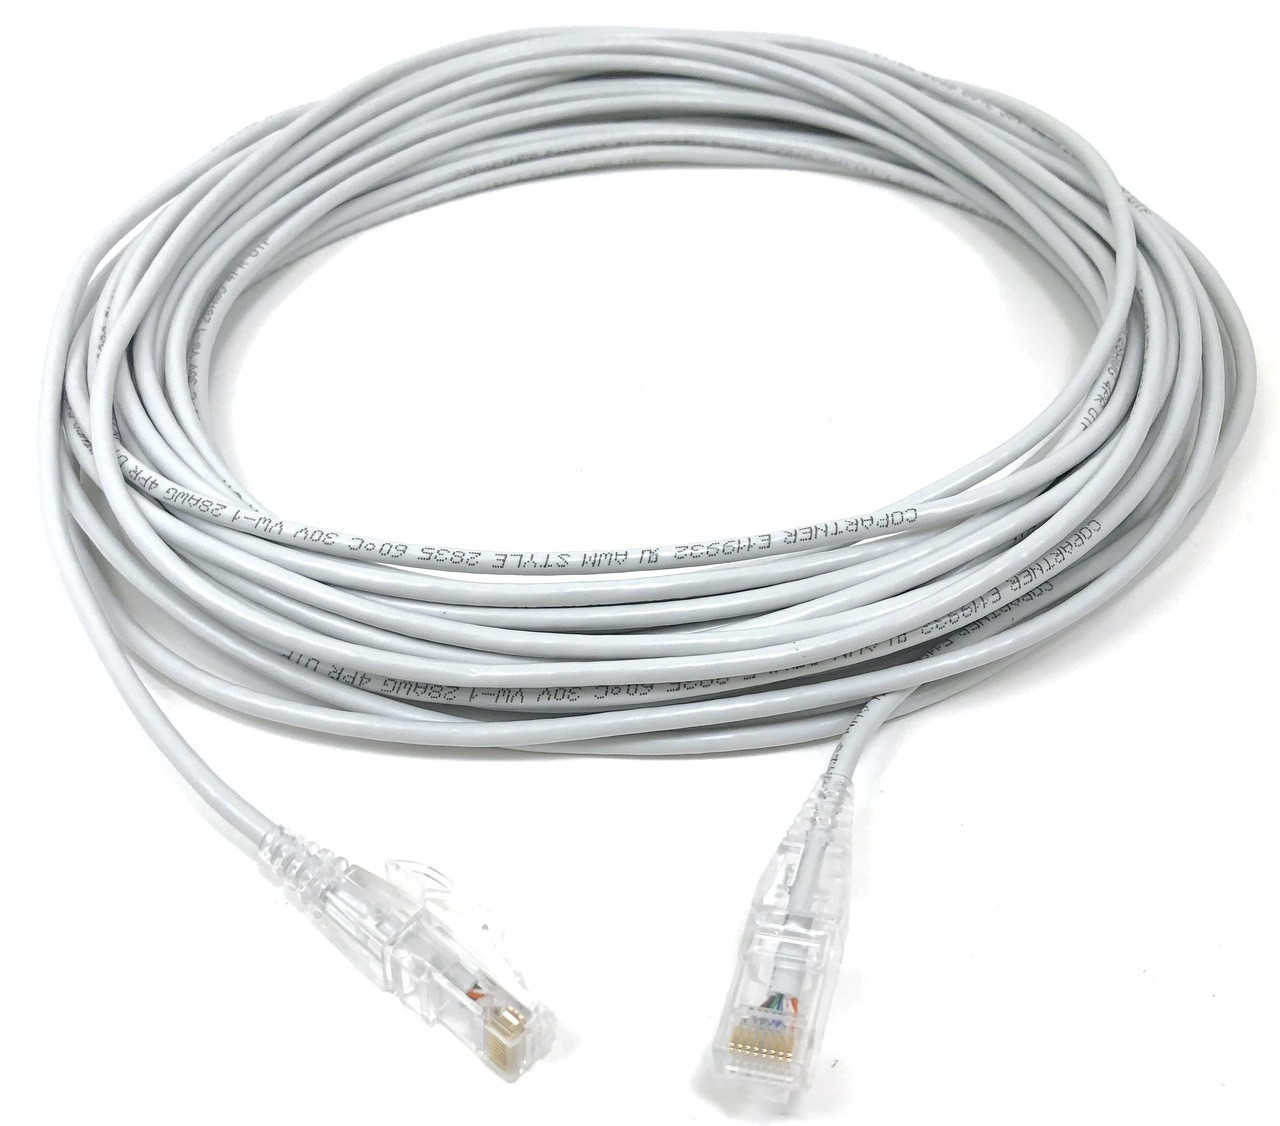 Ultra Slim CAT 6 Patch Cable (28AWG) White - 50 ft